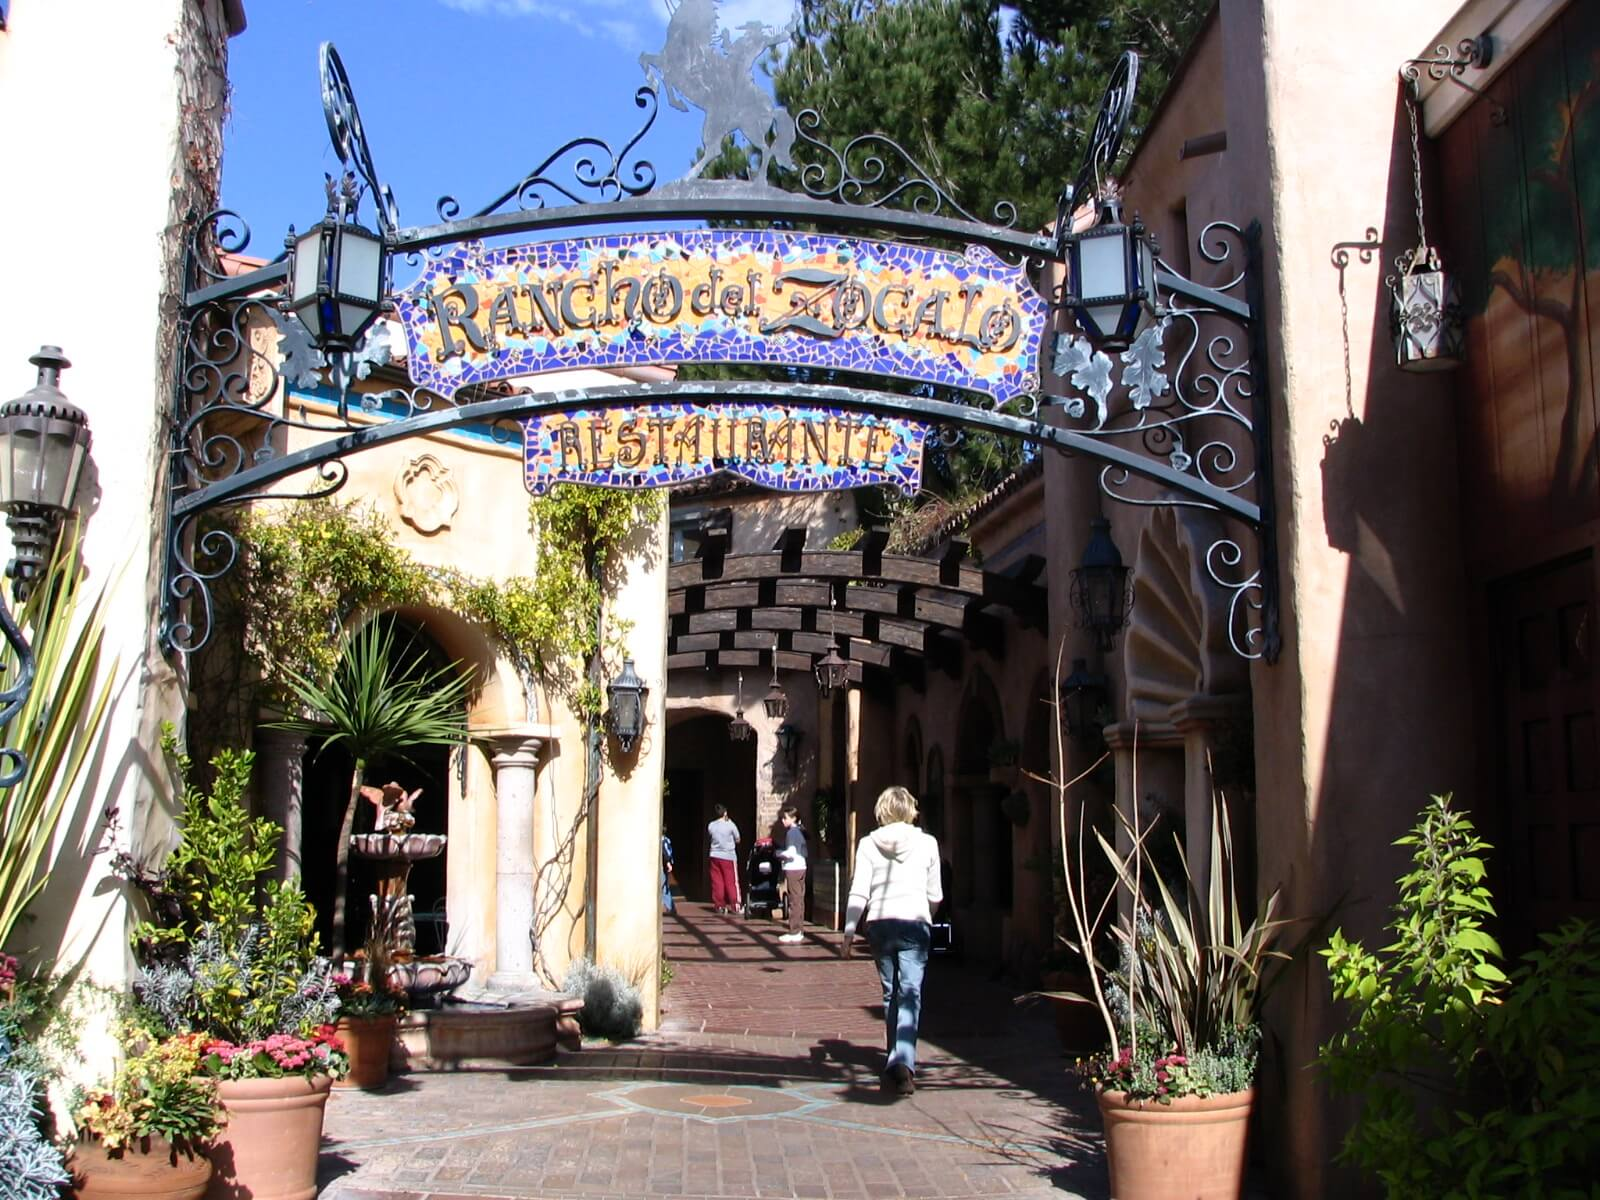 Rancho del zocalo resturant Things to do in disneyland